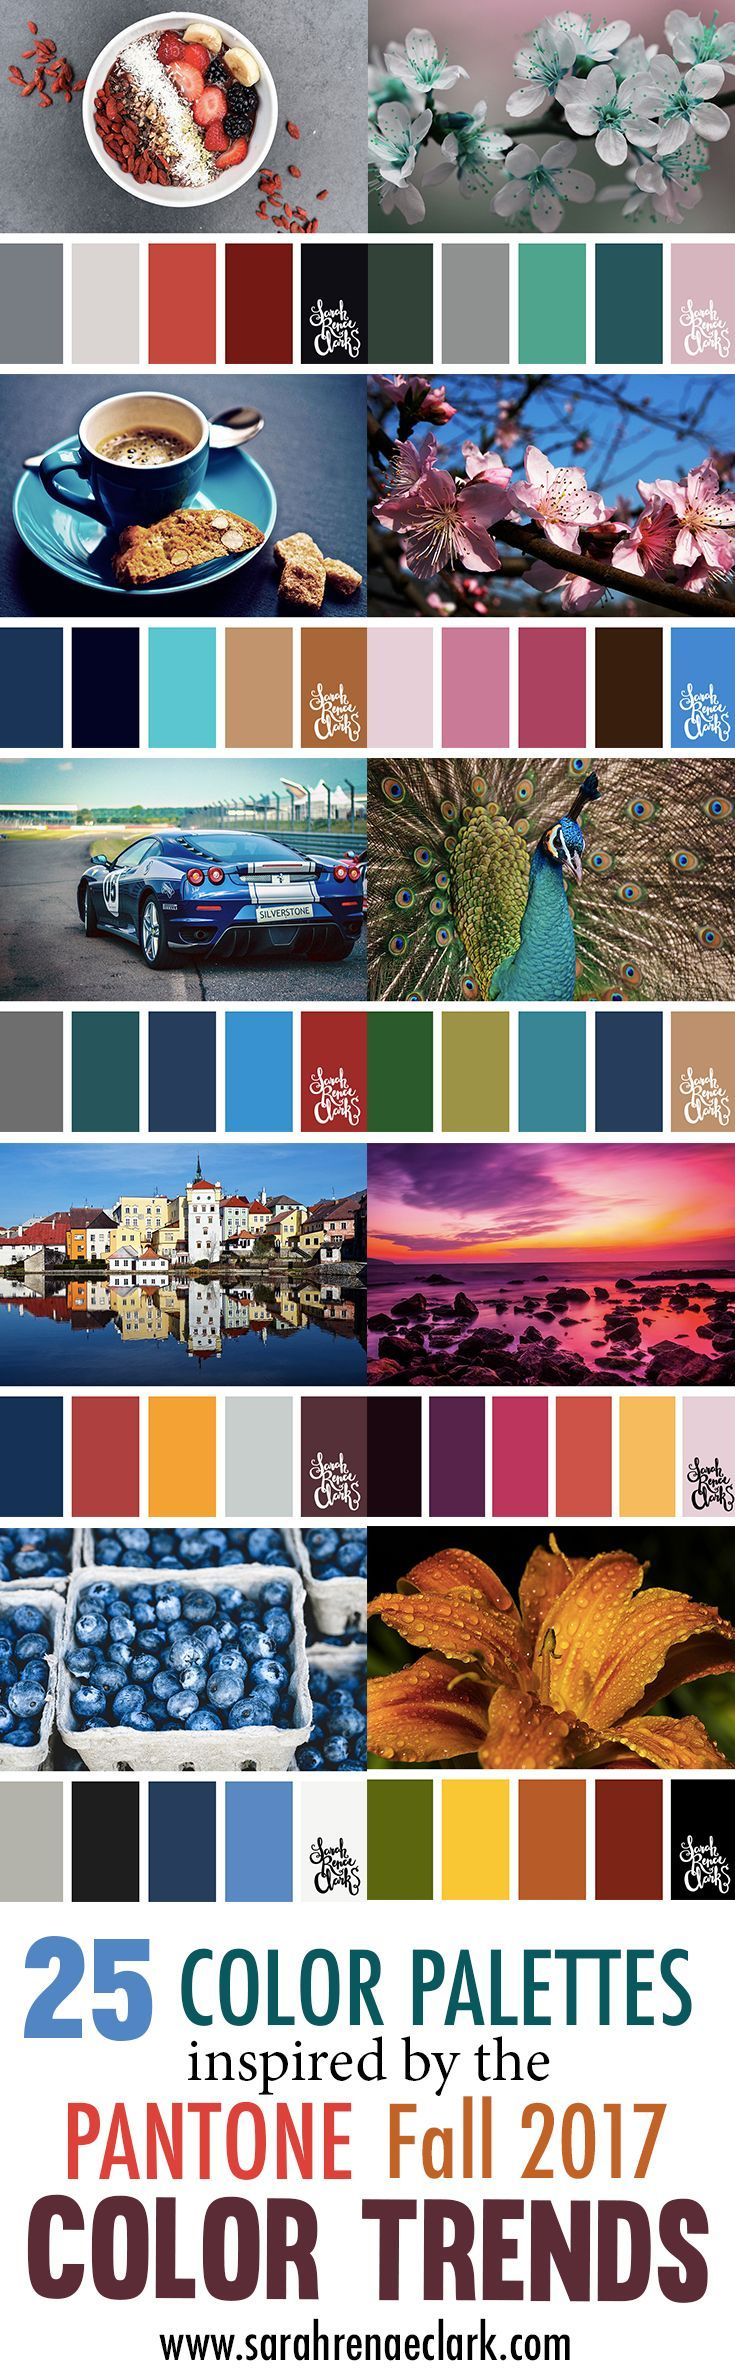 25 Color Palettes Inspired by the Pantone Fall 201…